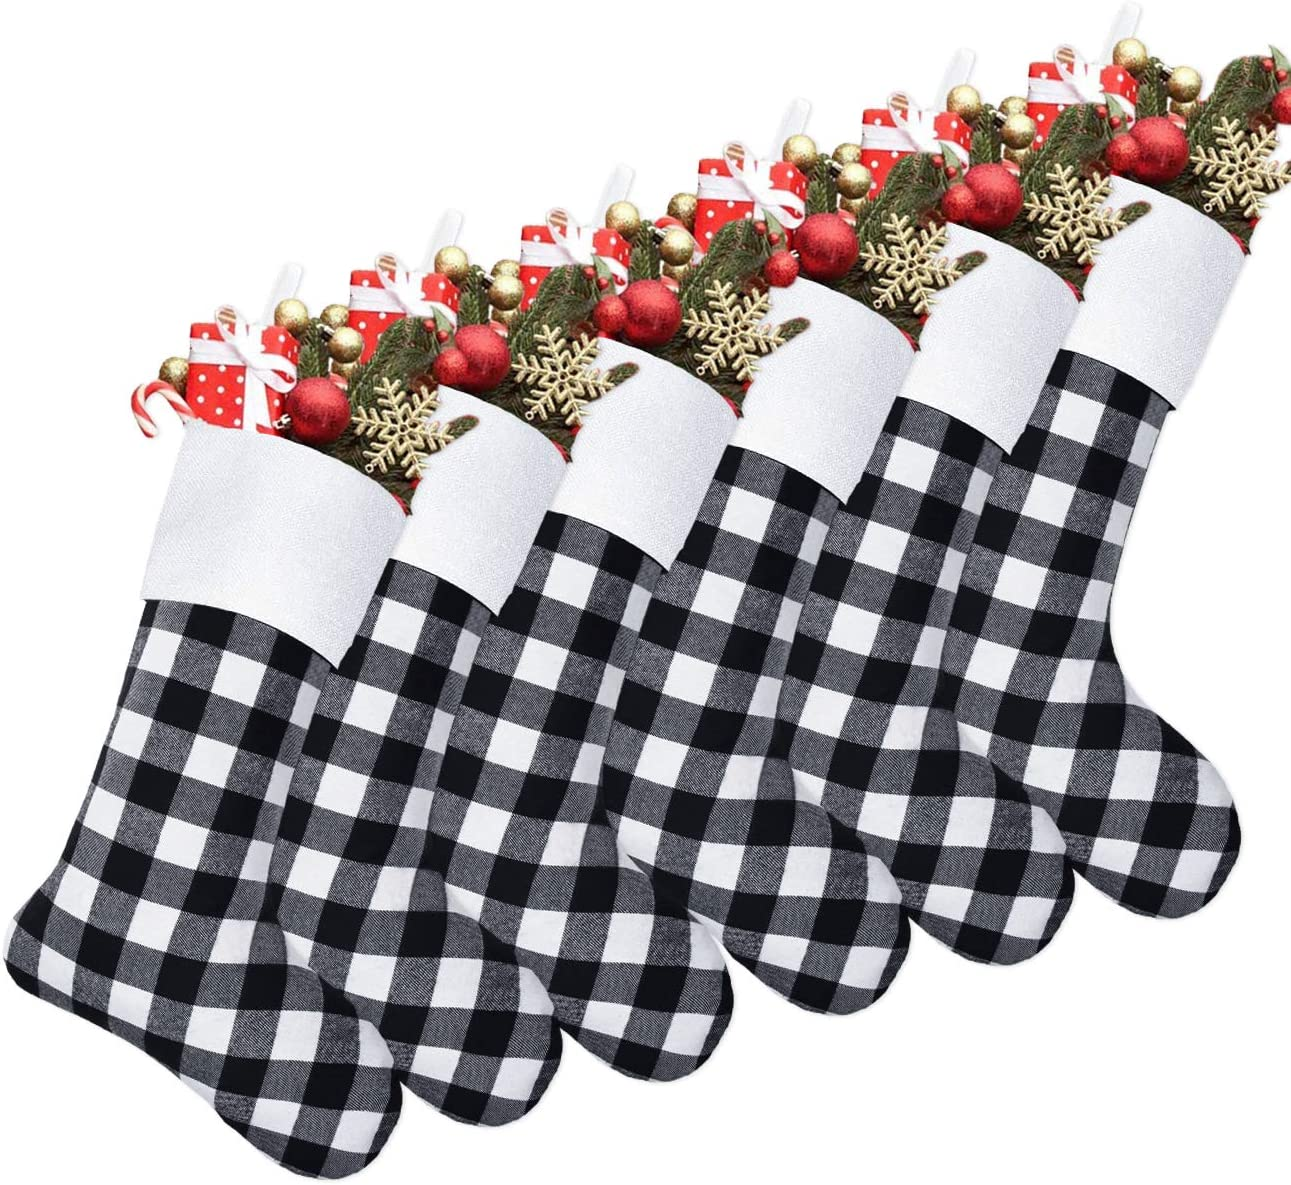 Senneny 6 Pack Christmas At the price Stockings- Buffalo Black White favorite 18 Inch